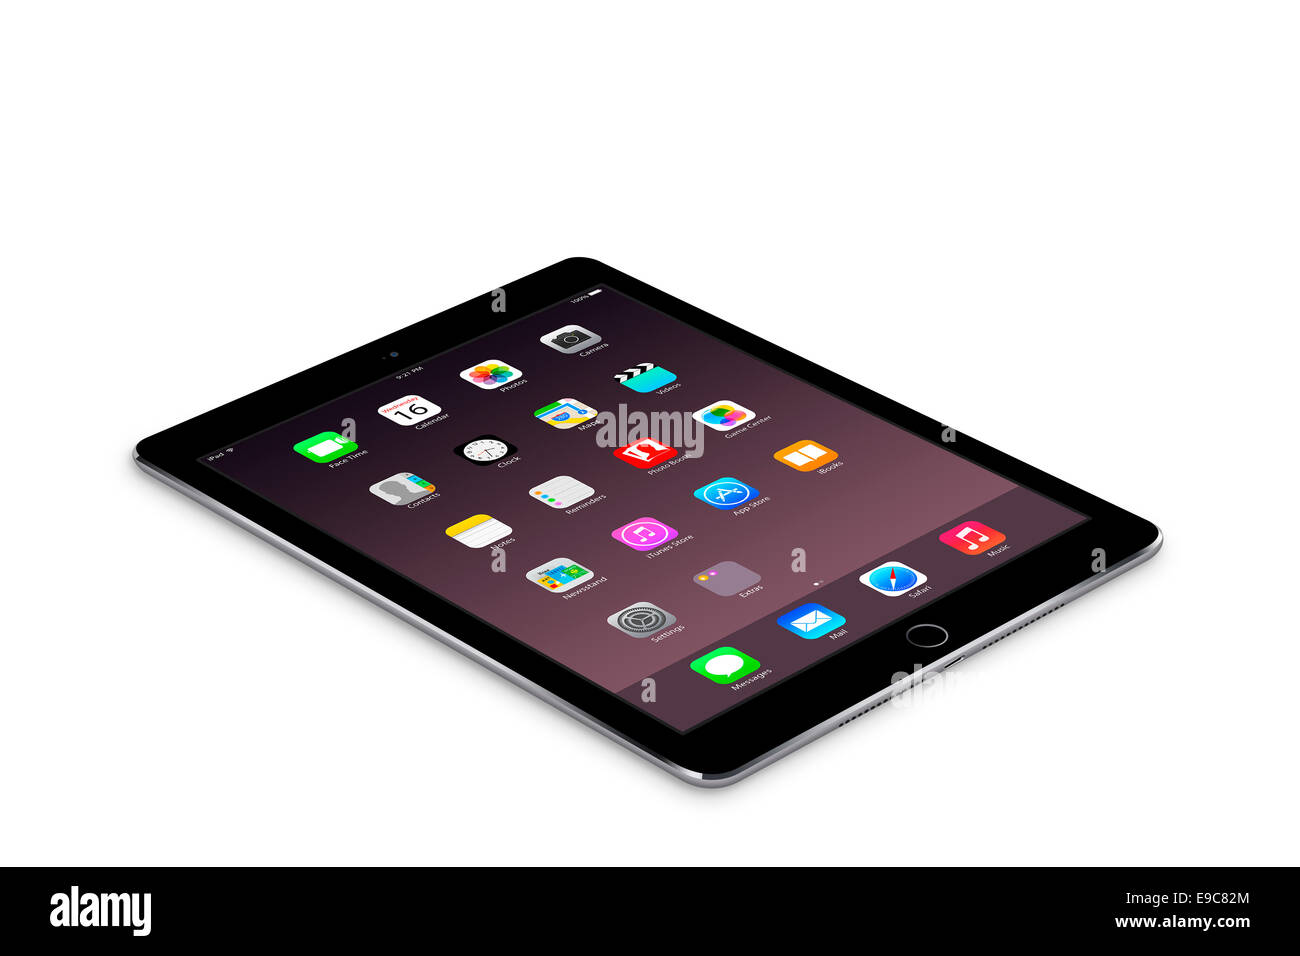 Tablet ipad air 2 space gray with apps, digitally generated artwork. - Stock Image